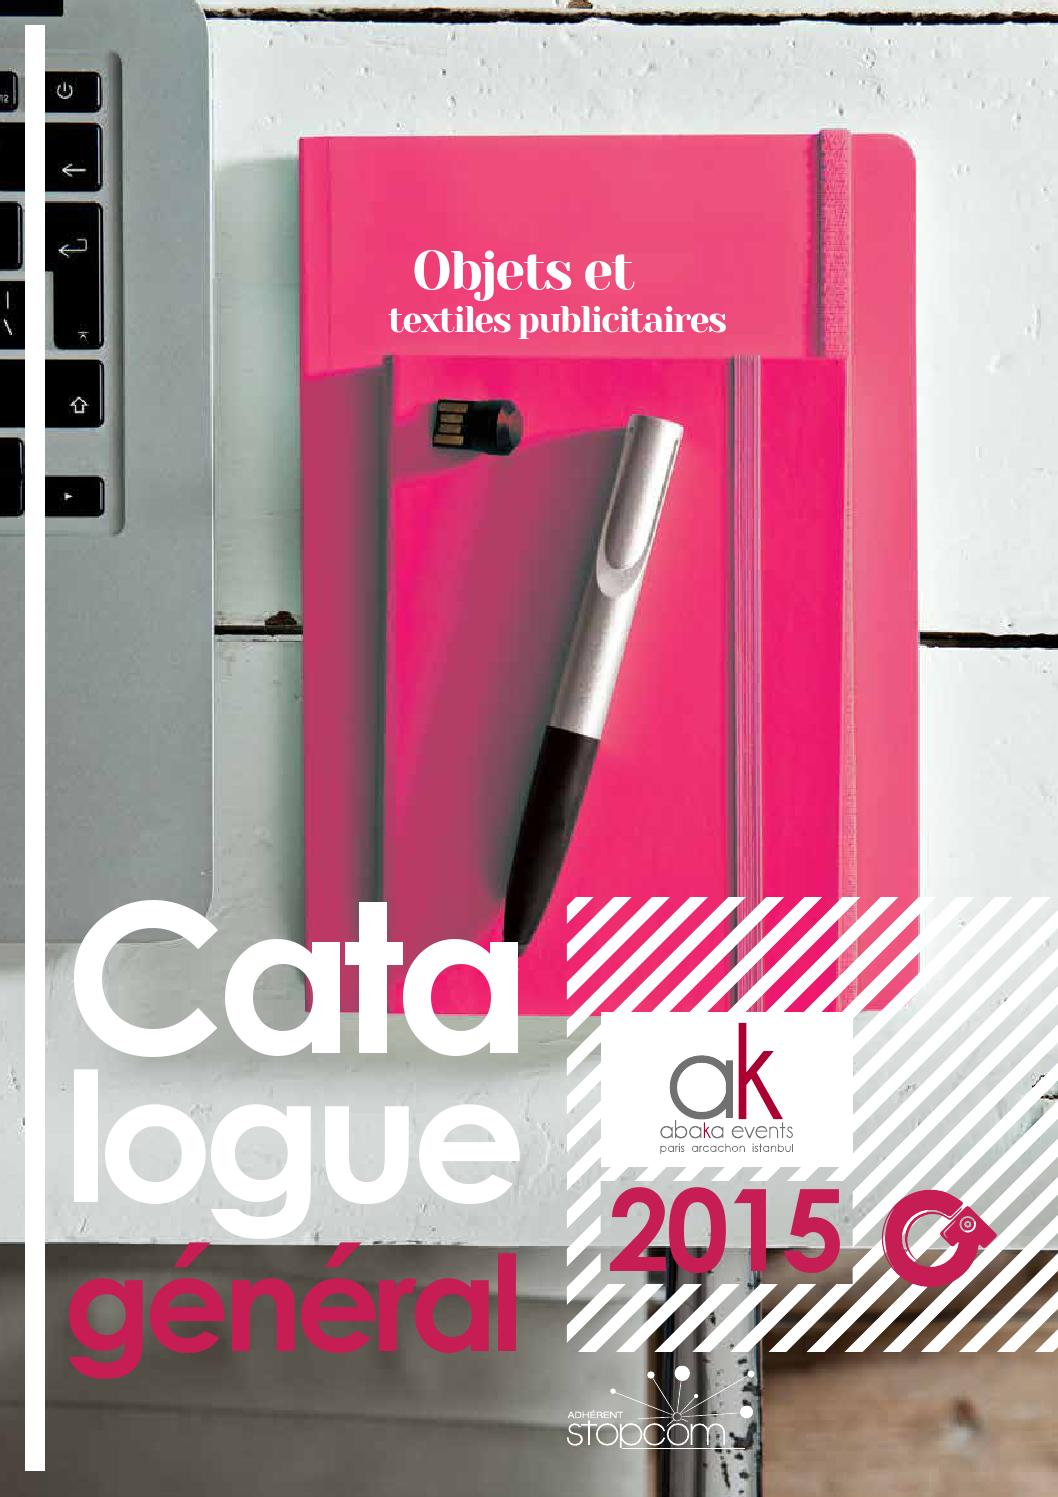 Catalogue OG6 Abaka by Objectif Goodies - issuu e839d96b1fa